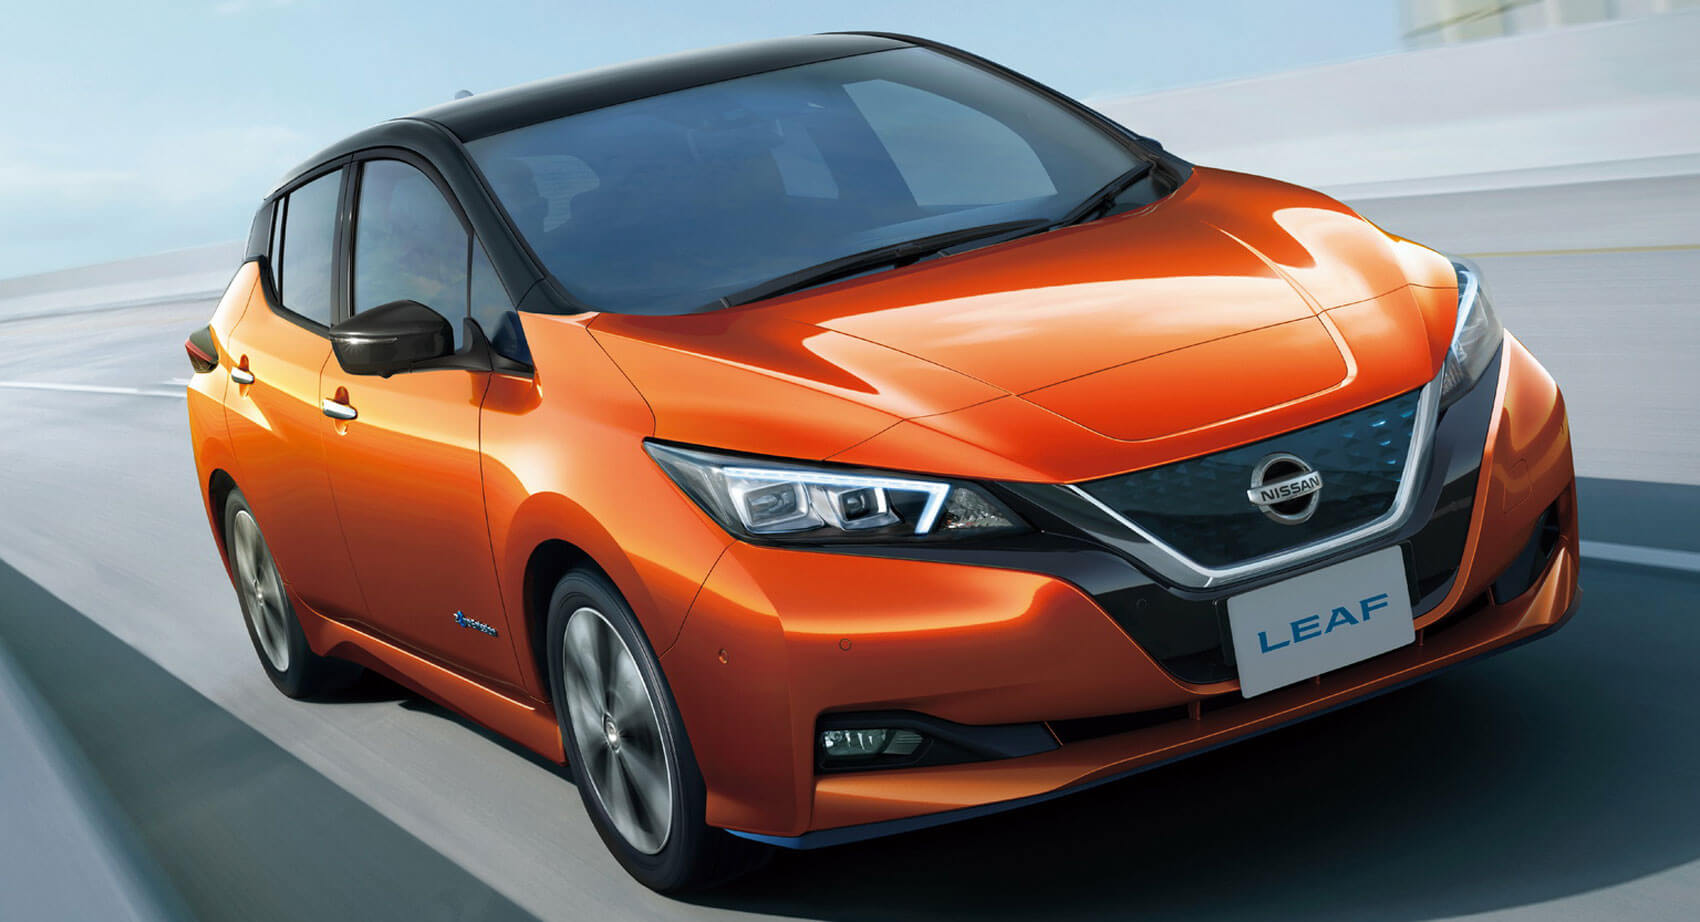 2020 Nissan Leaf Rolls In With New Technologies And Colors ...